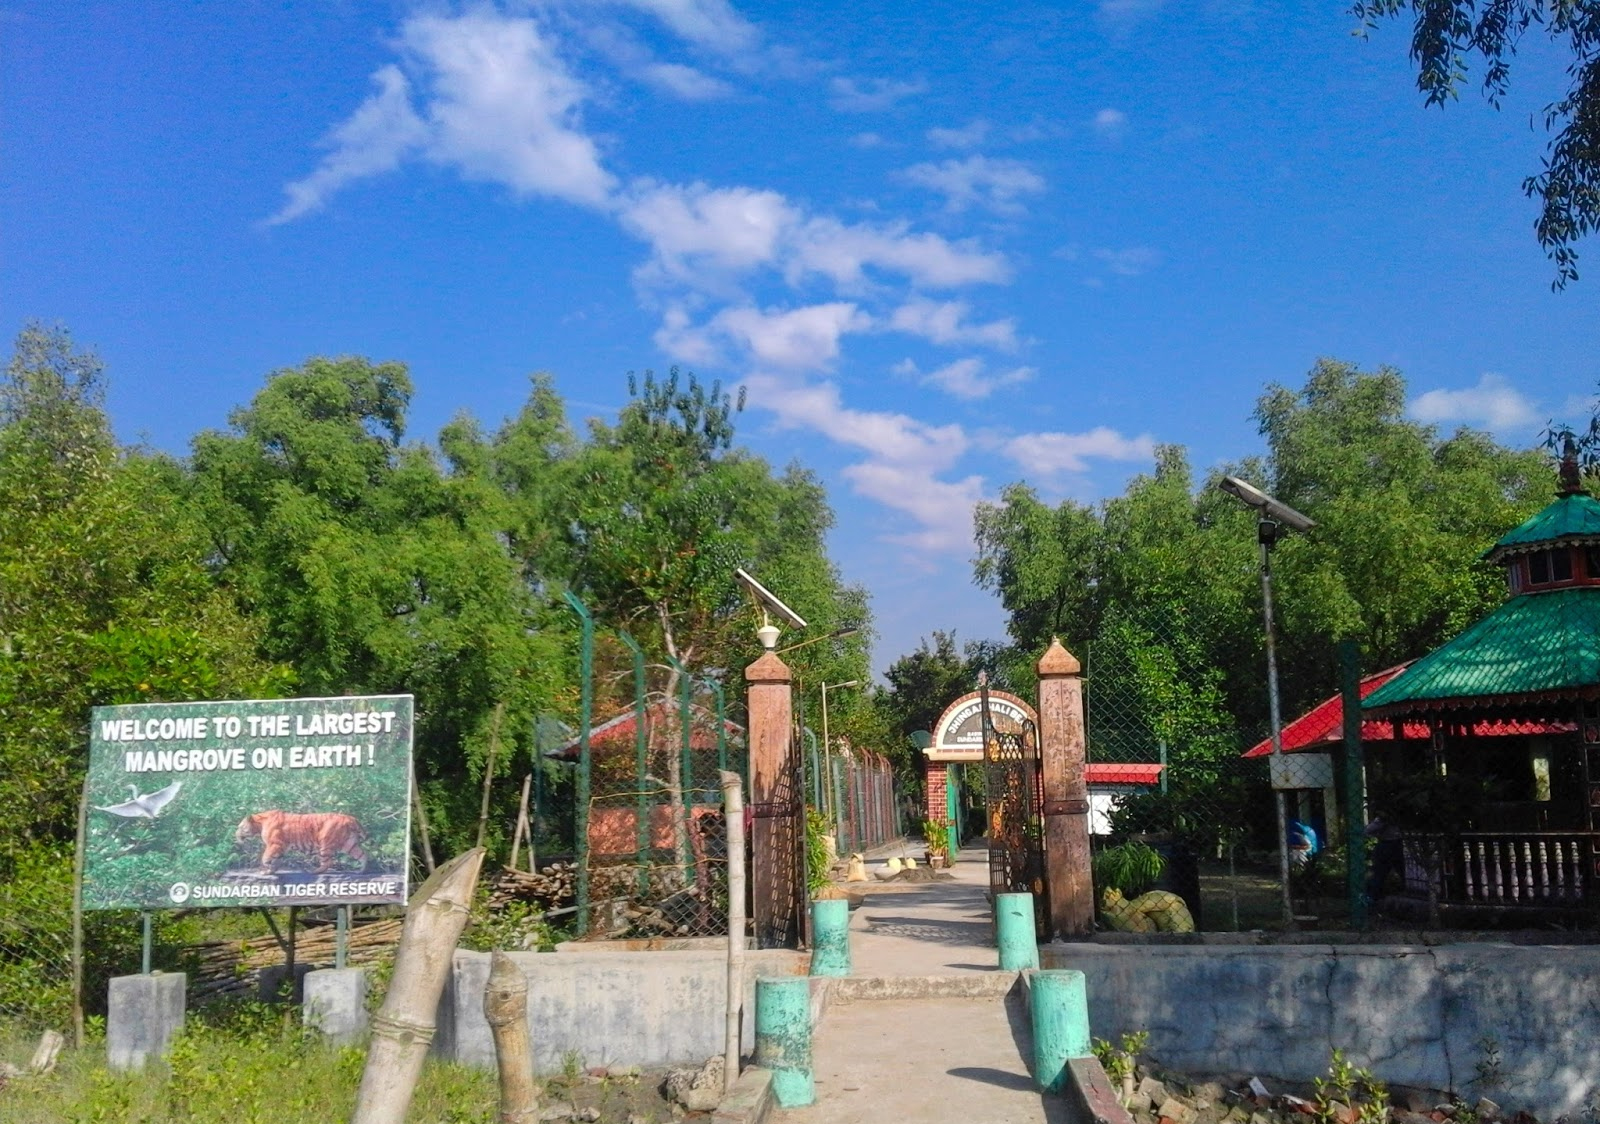 Top Place To Visit In Sundarban-Jhingekhali